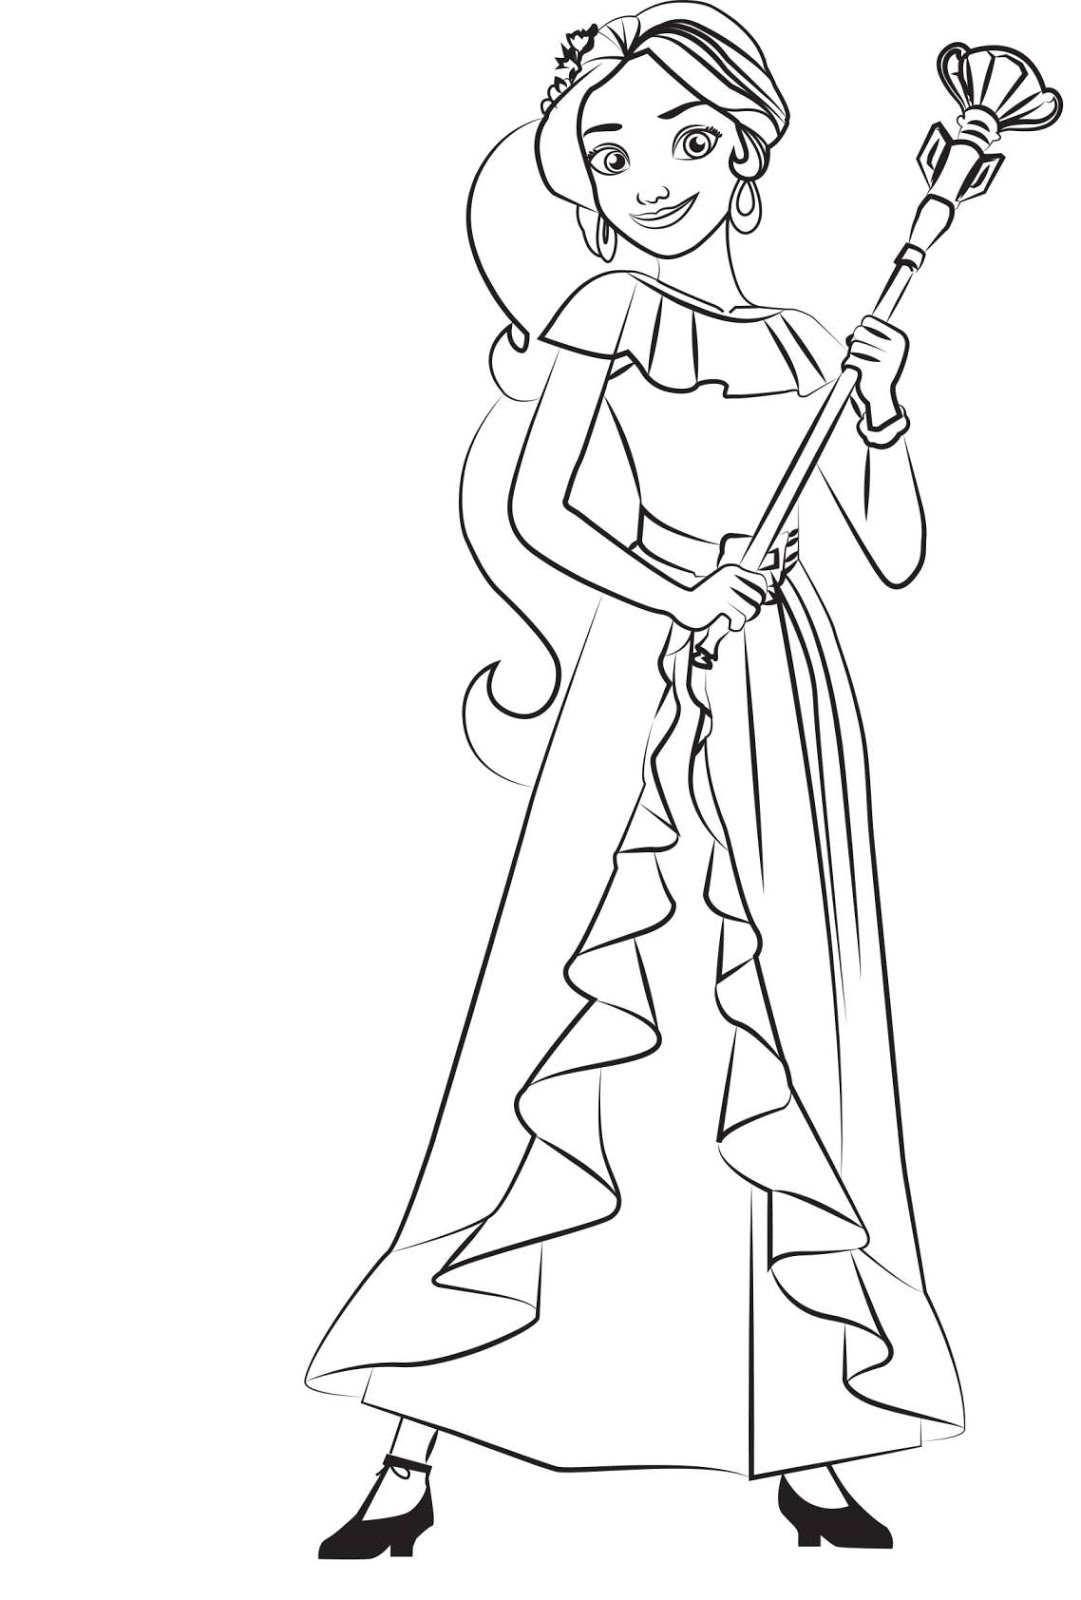 Elena Of Avalor Coloring Pages - Kidsuki